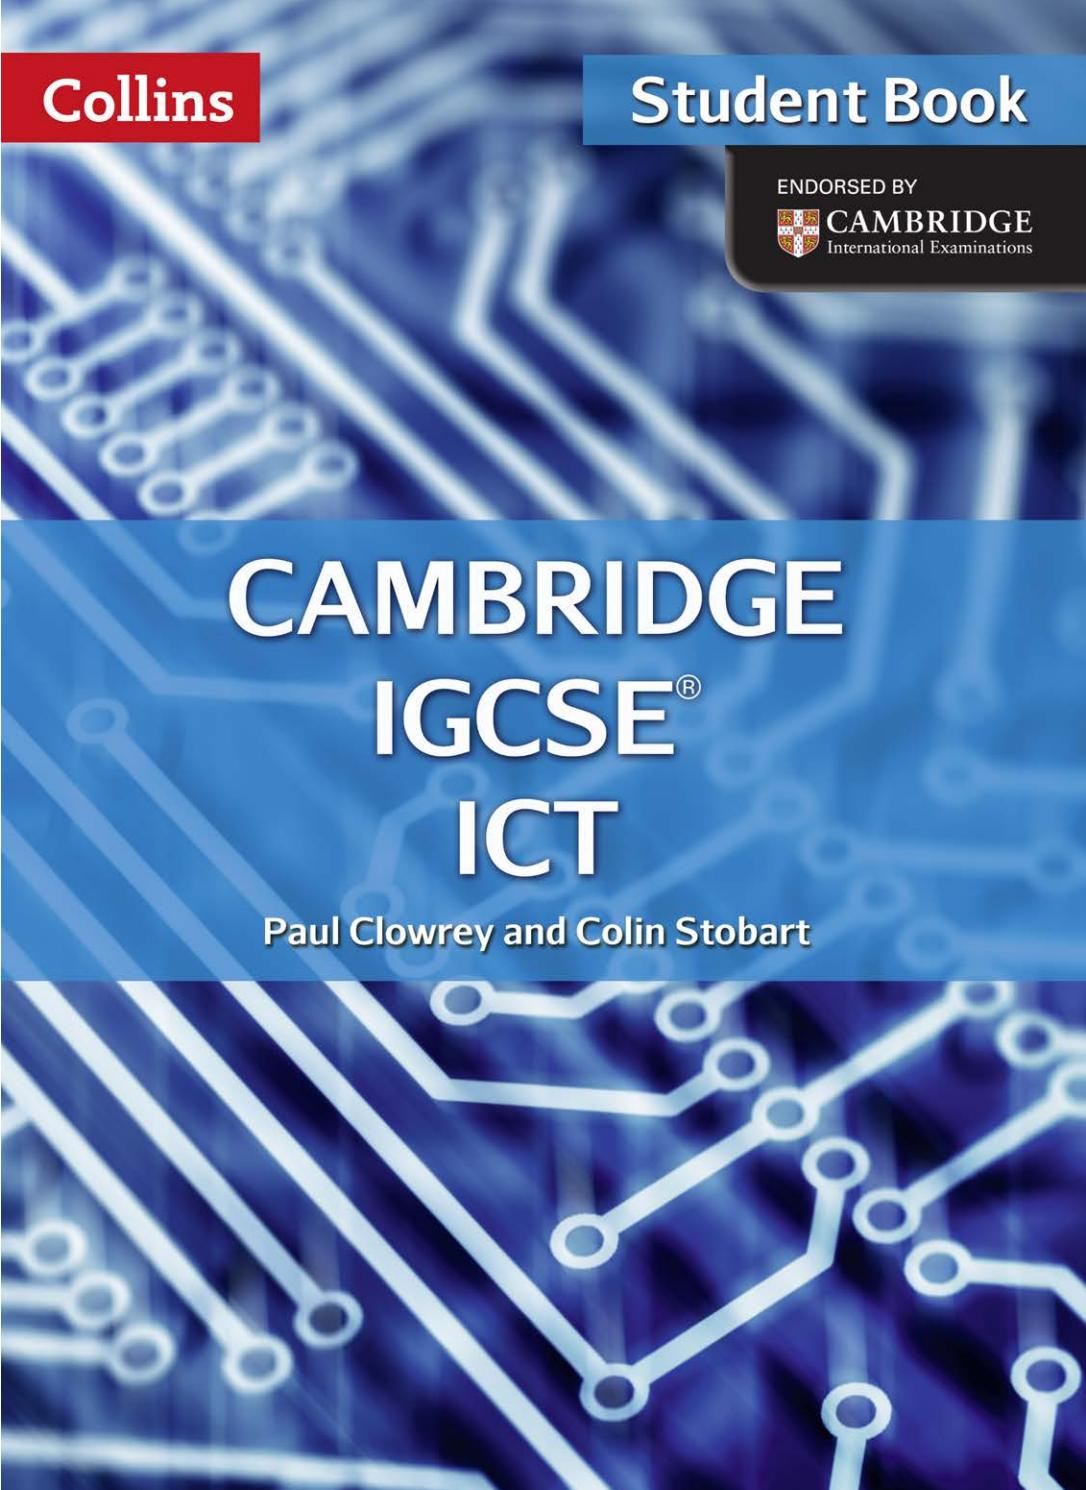 Cambridge IGCSE ICT Student Book by Collins - issuu